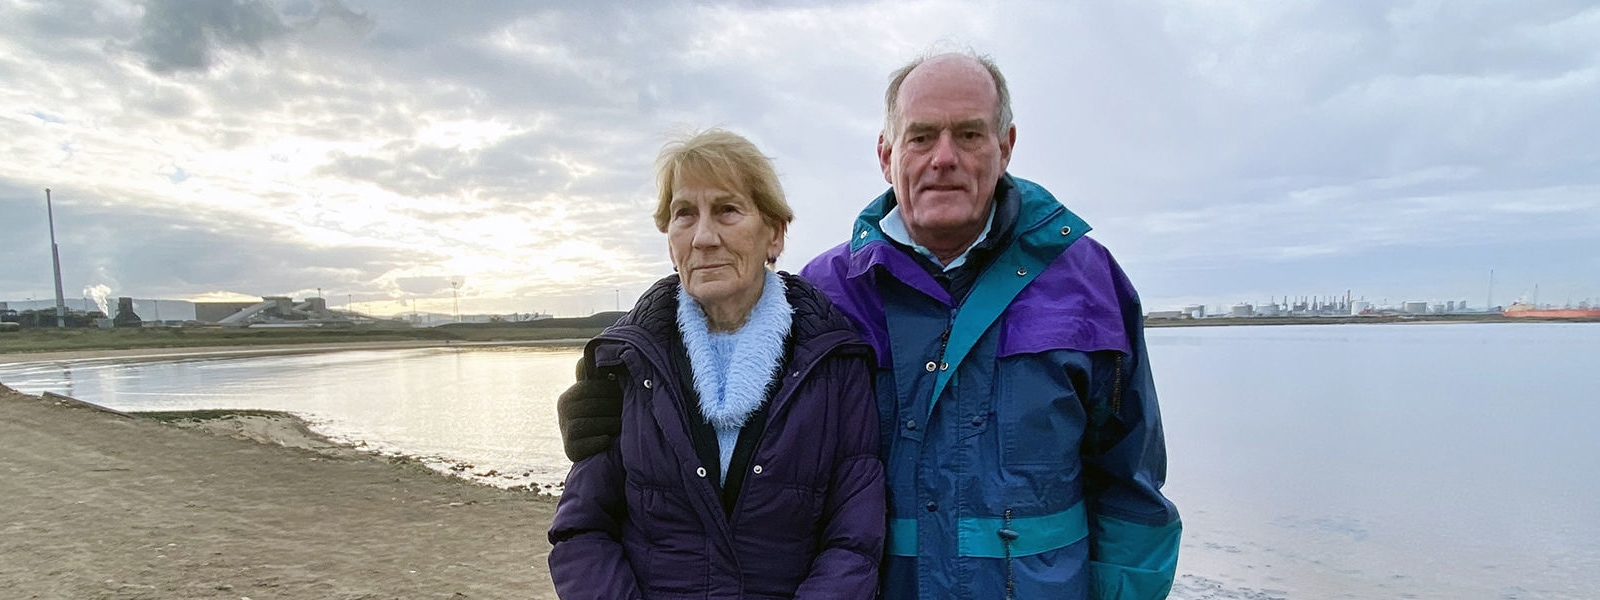 An elderly couple stand with arms around eachother in front of the sea, they look serious and concerned.